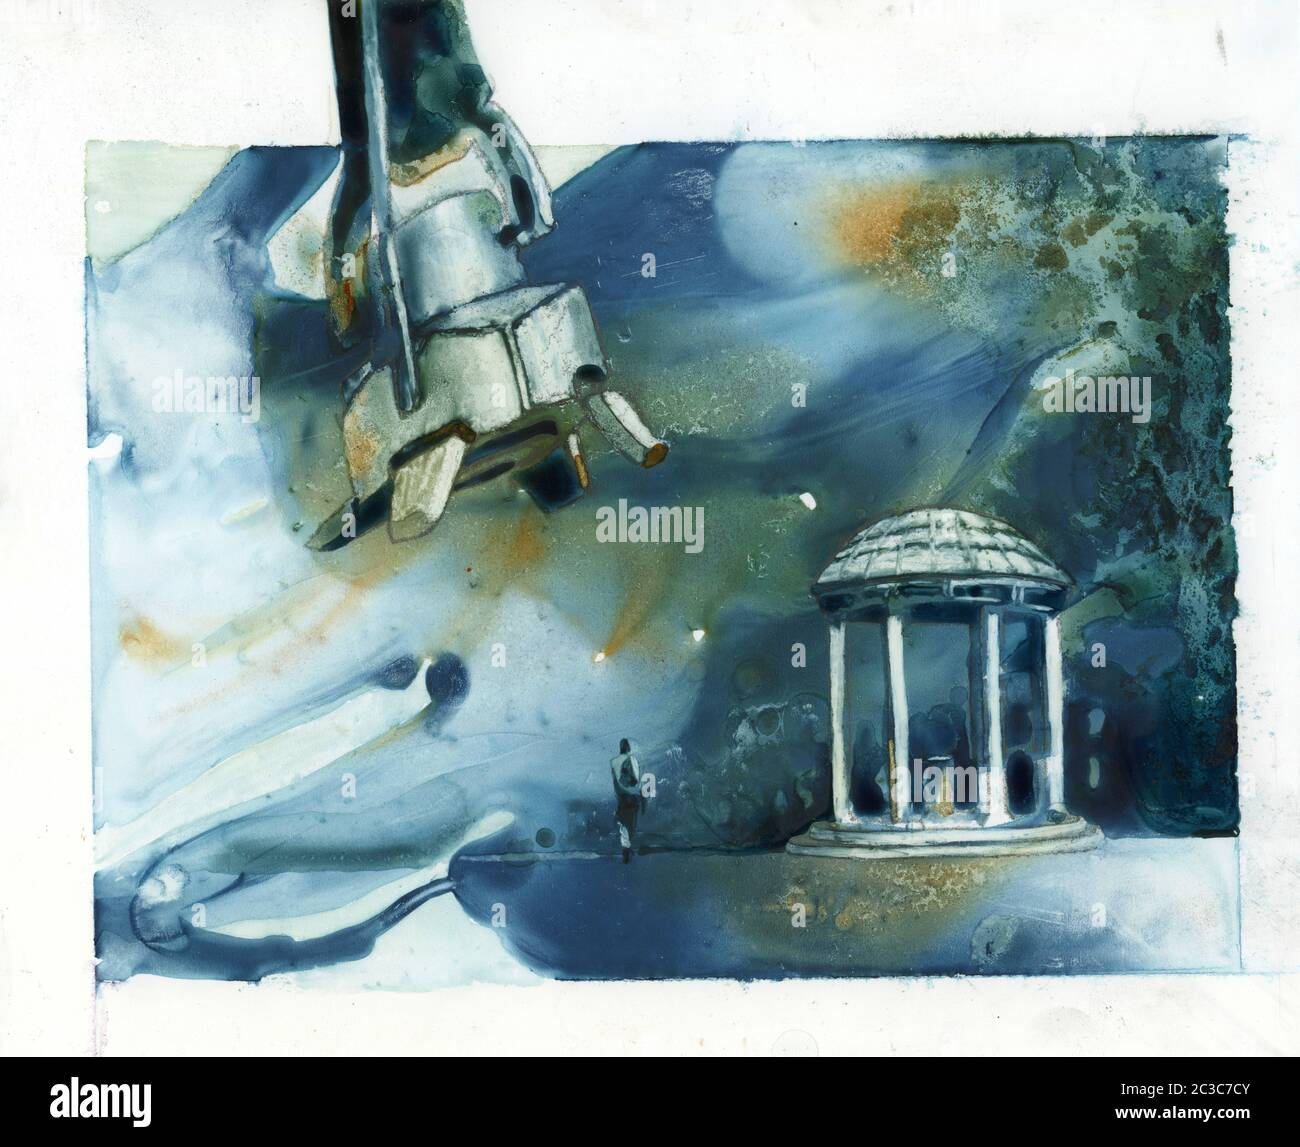 UNC Old Well in Chapel Hill being attacked by robot foot- North Carolina.  Watercolor painting UNC Well NC university robot attack funny art Stock Photo